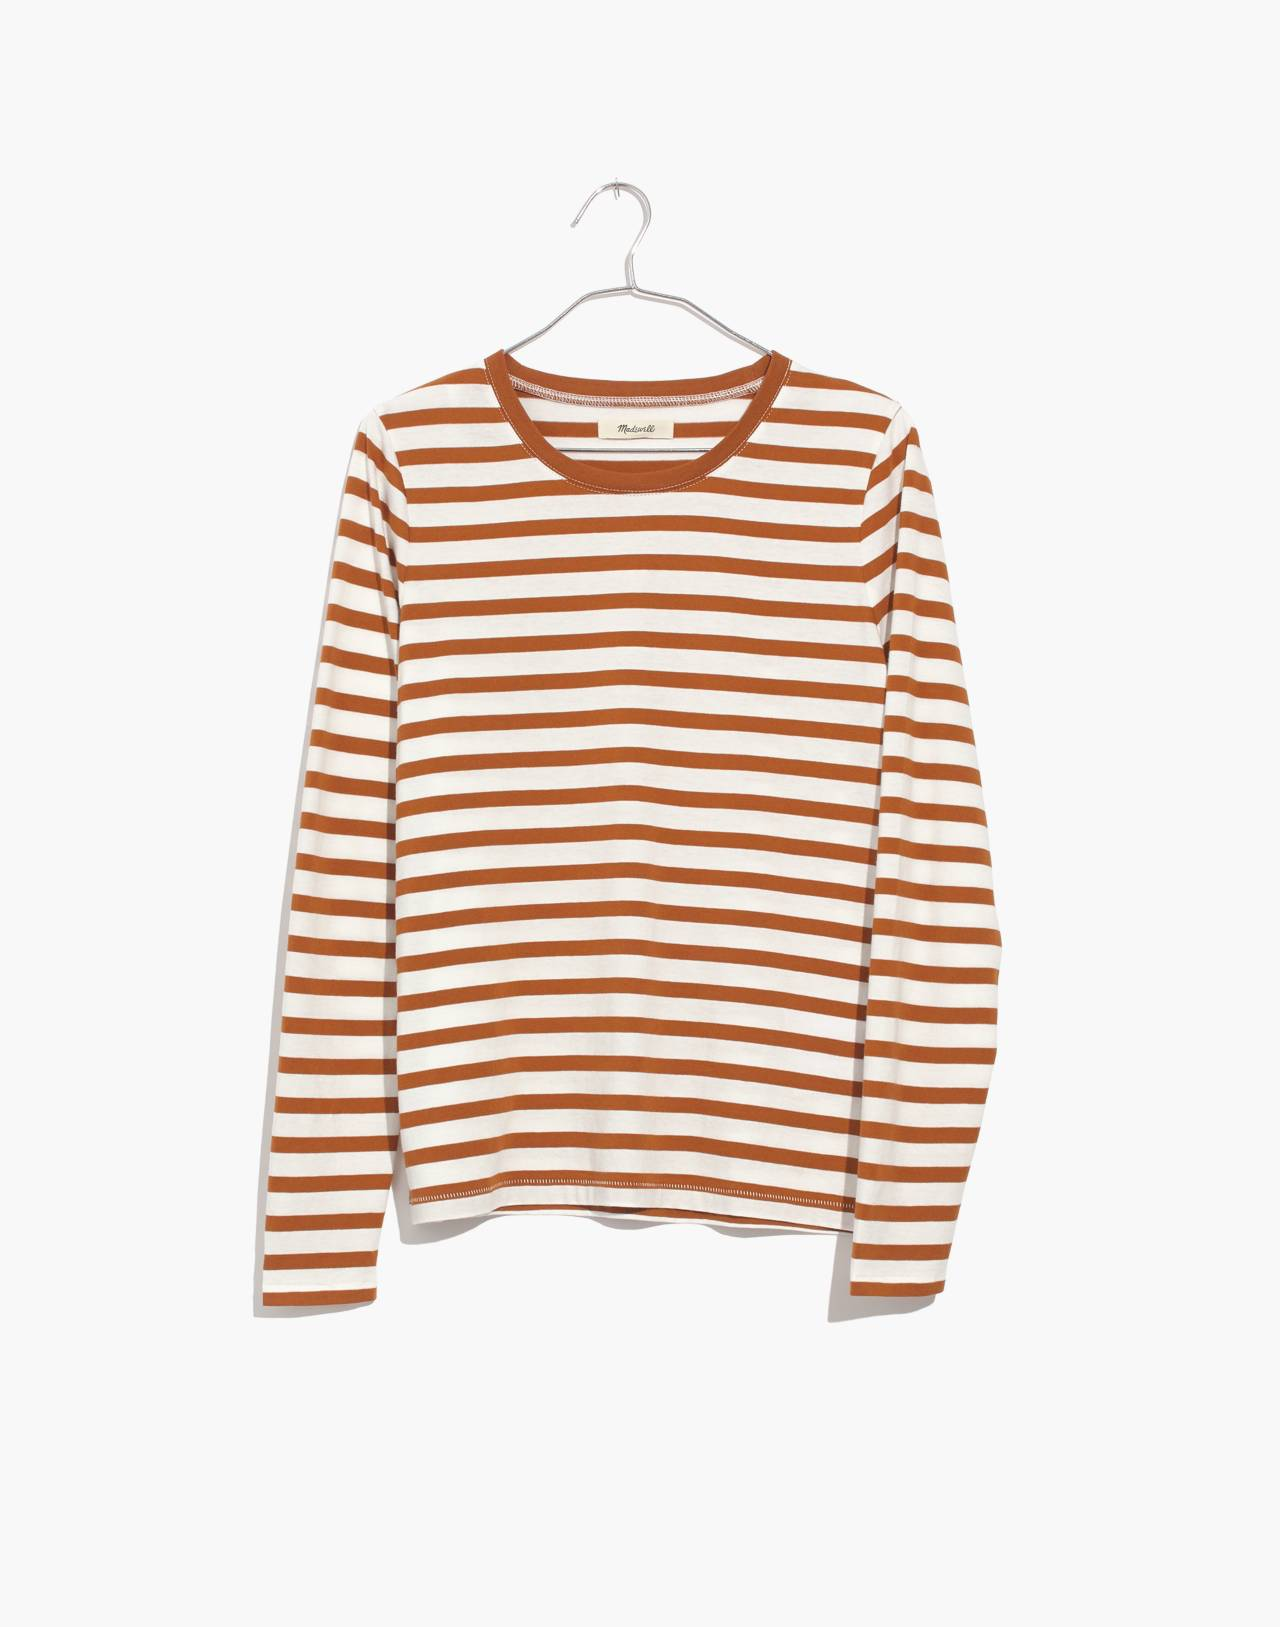 Northside Long-Sleeve Vintage Tee in Stripe in golden pecan dove stripe image 4